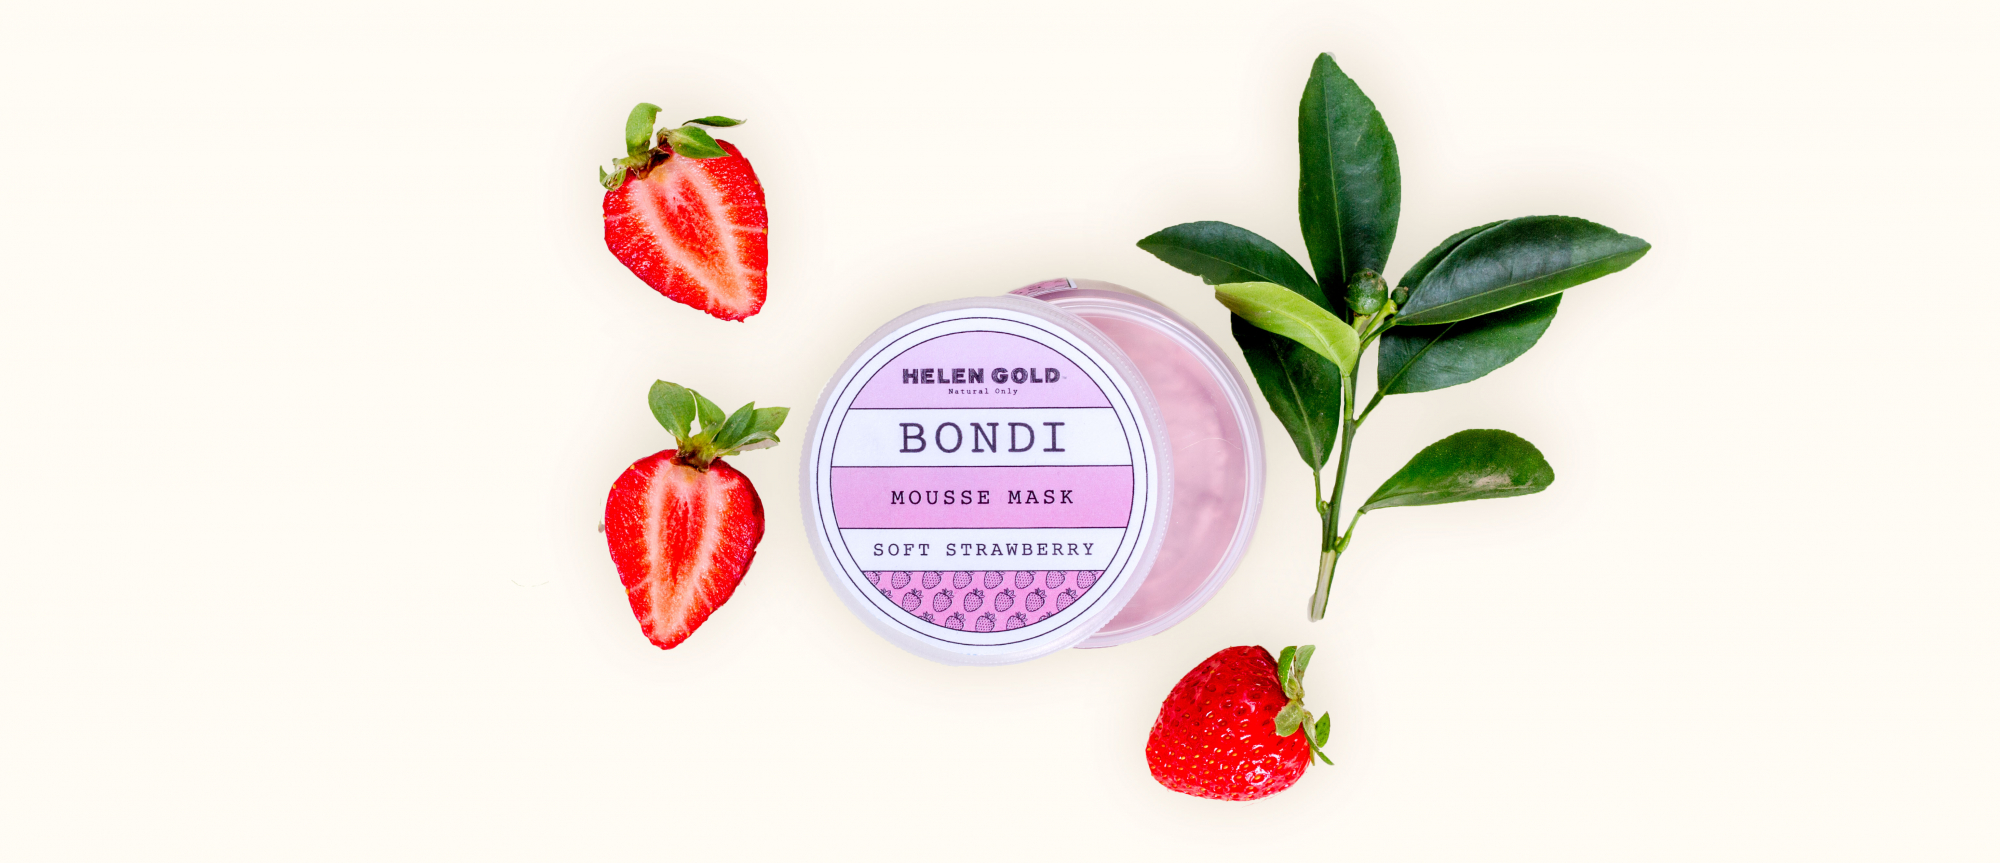 Средства для лица Soft Strawberry Mousse Mask серии Bondi от Helen Gold, аромат - мята, 150 г